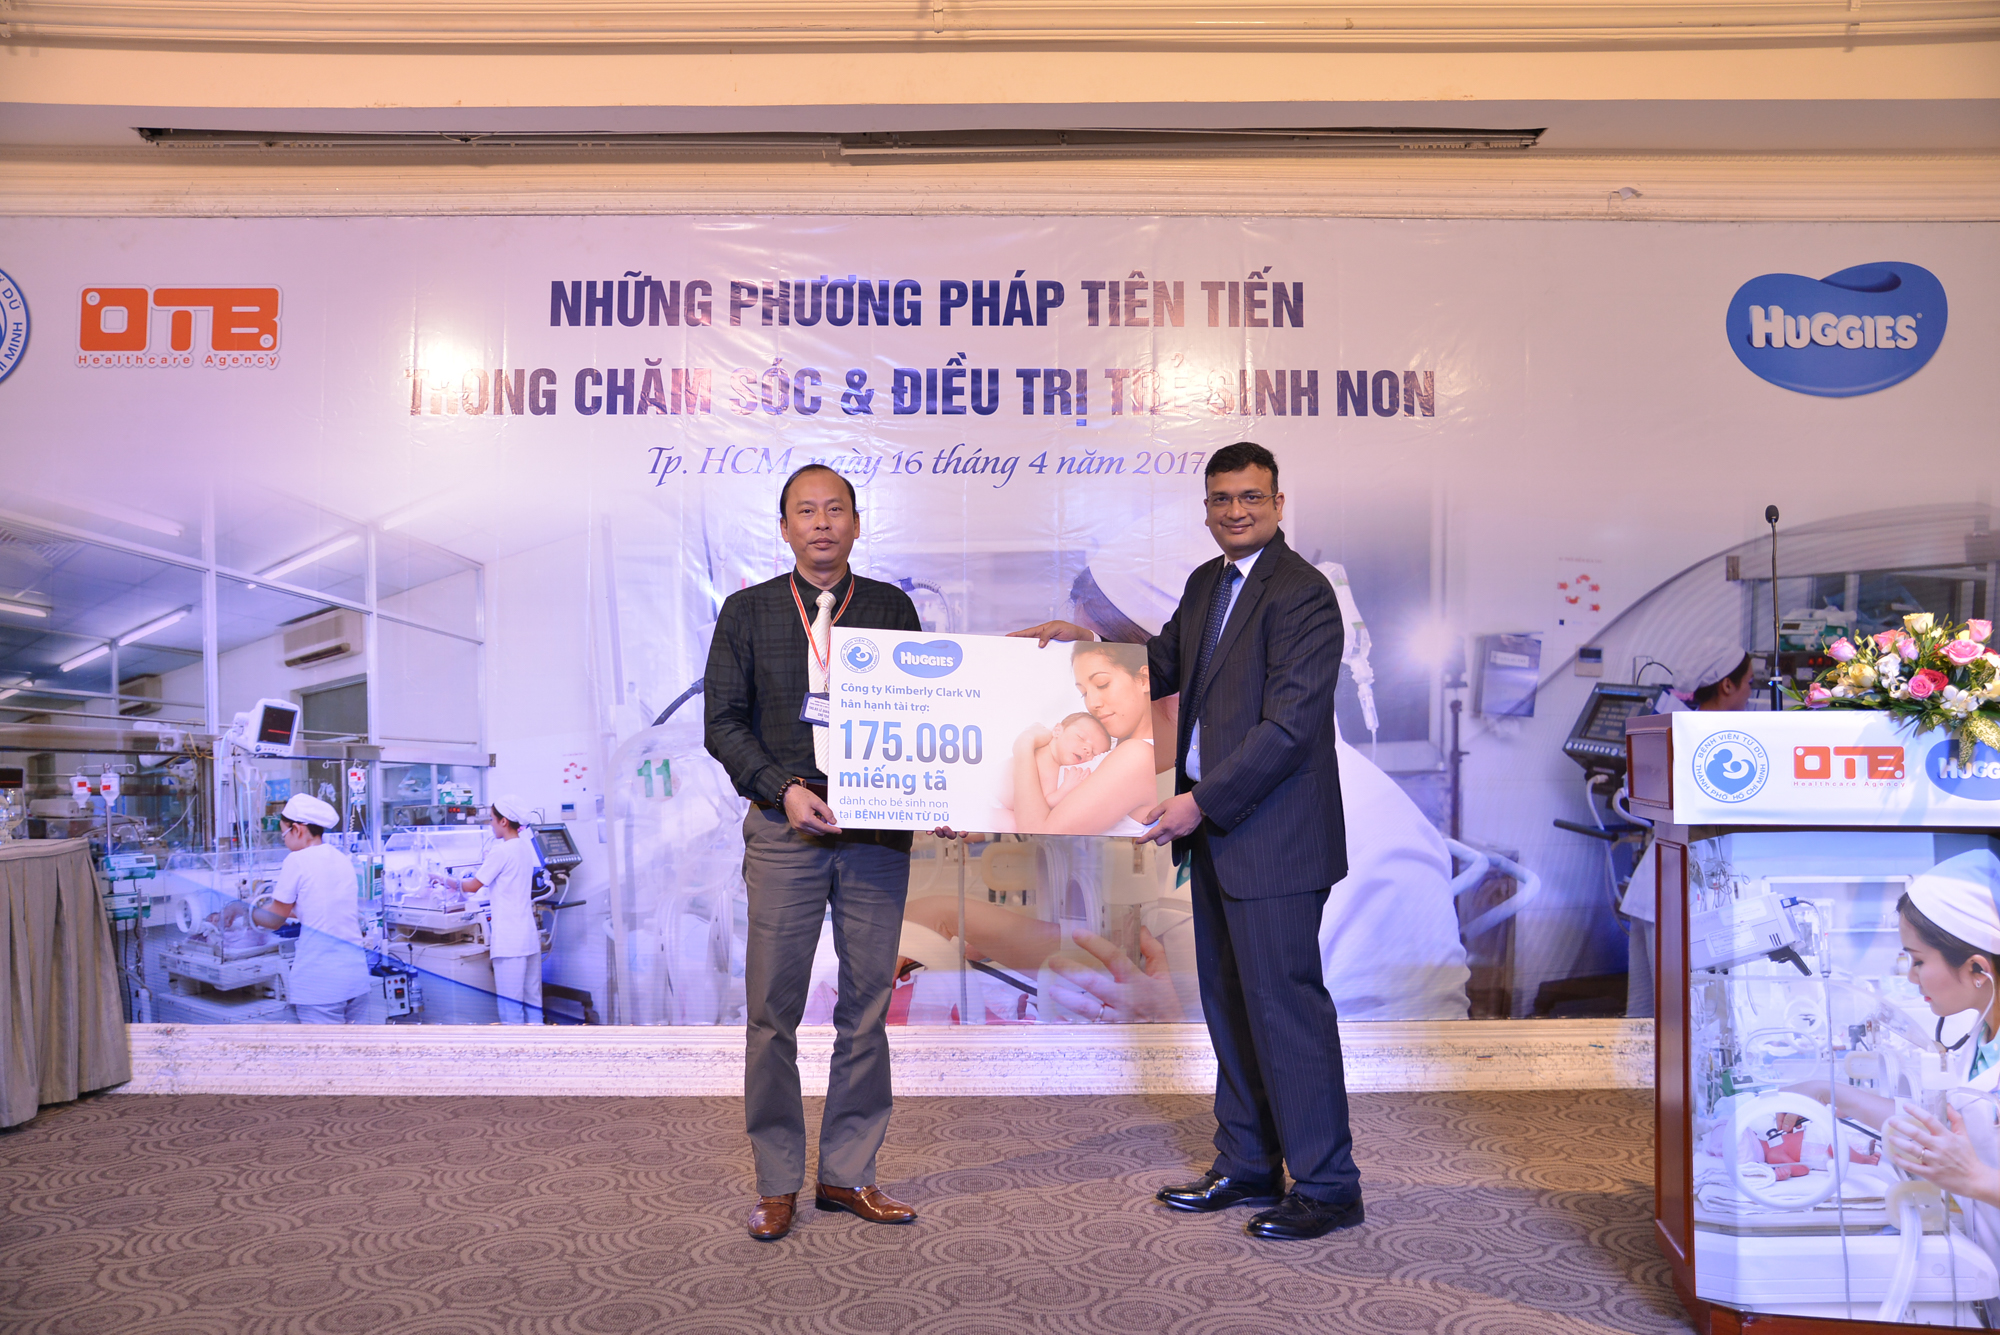 Latest news from Kimberly-Clark Vietnam